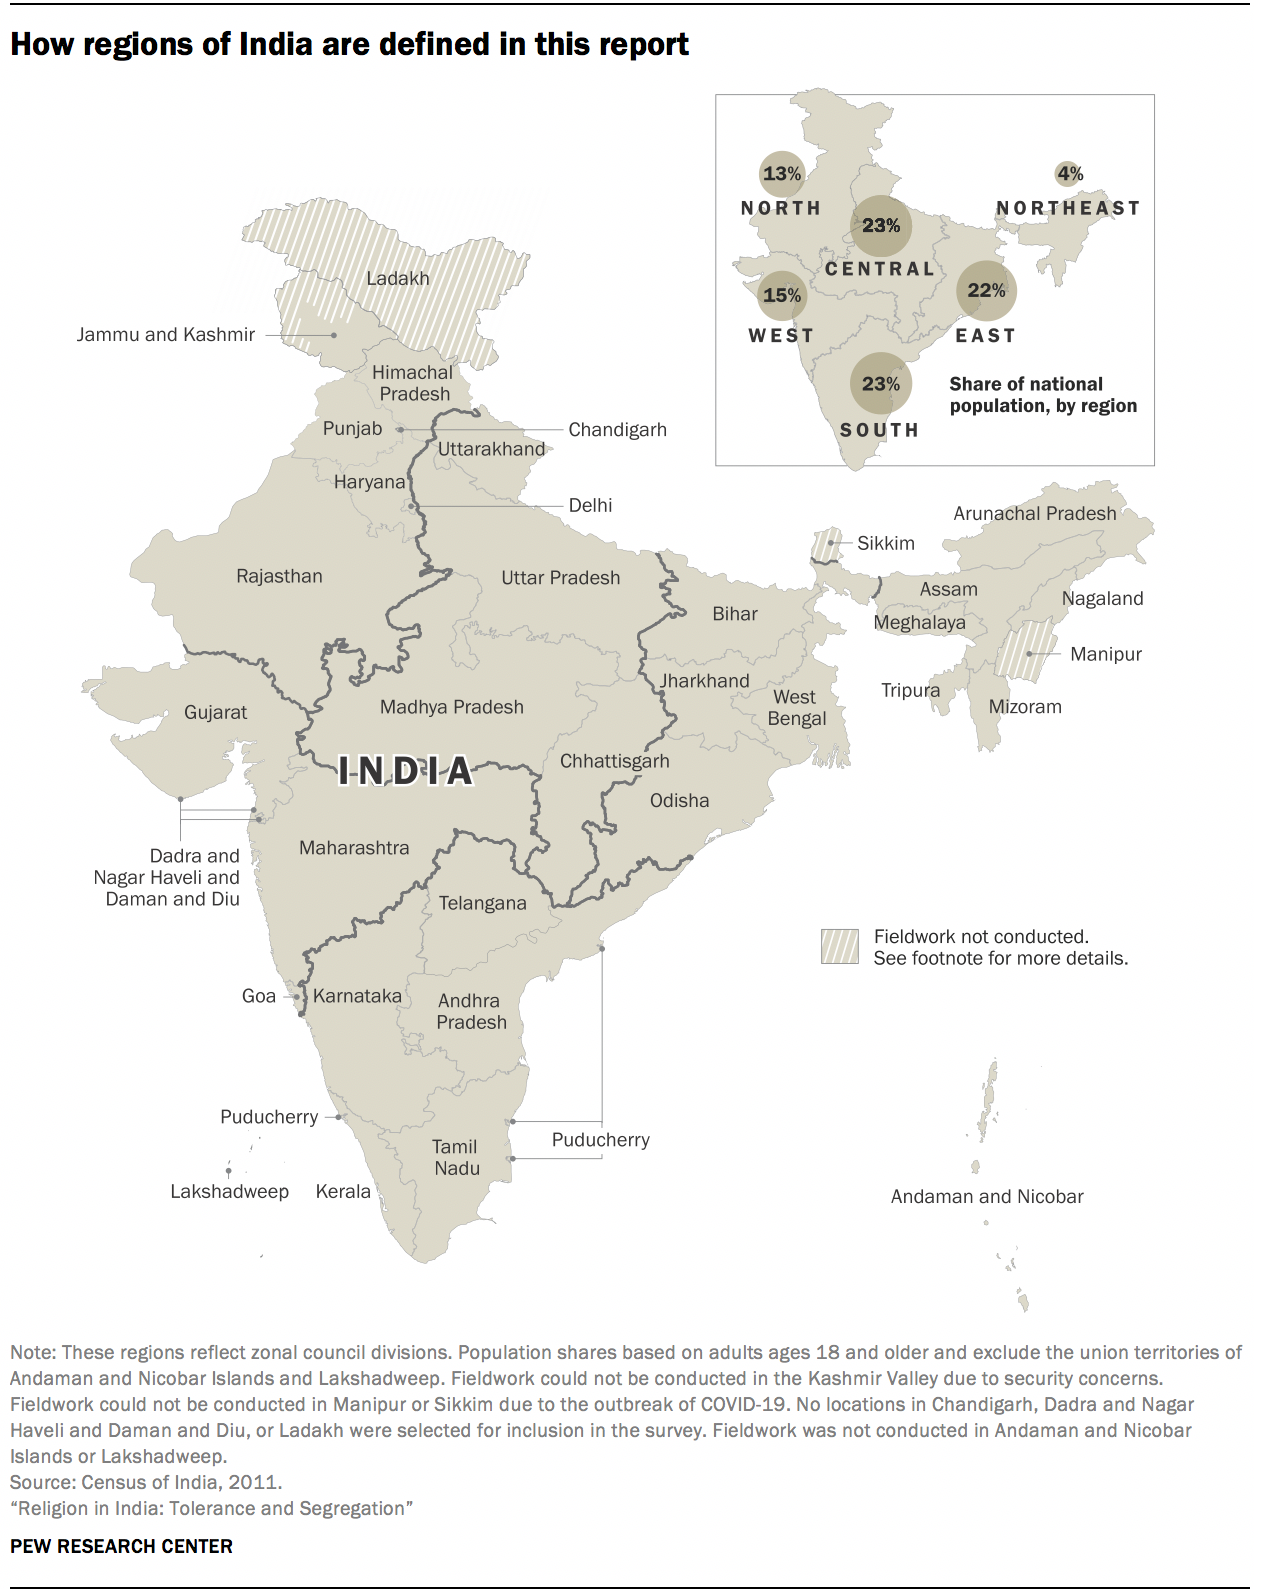 How regions of India are defined in this report